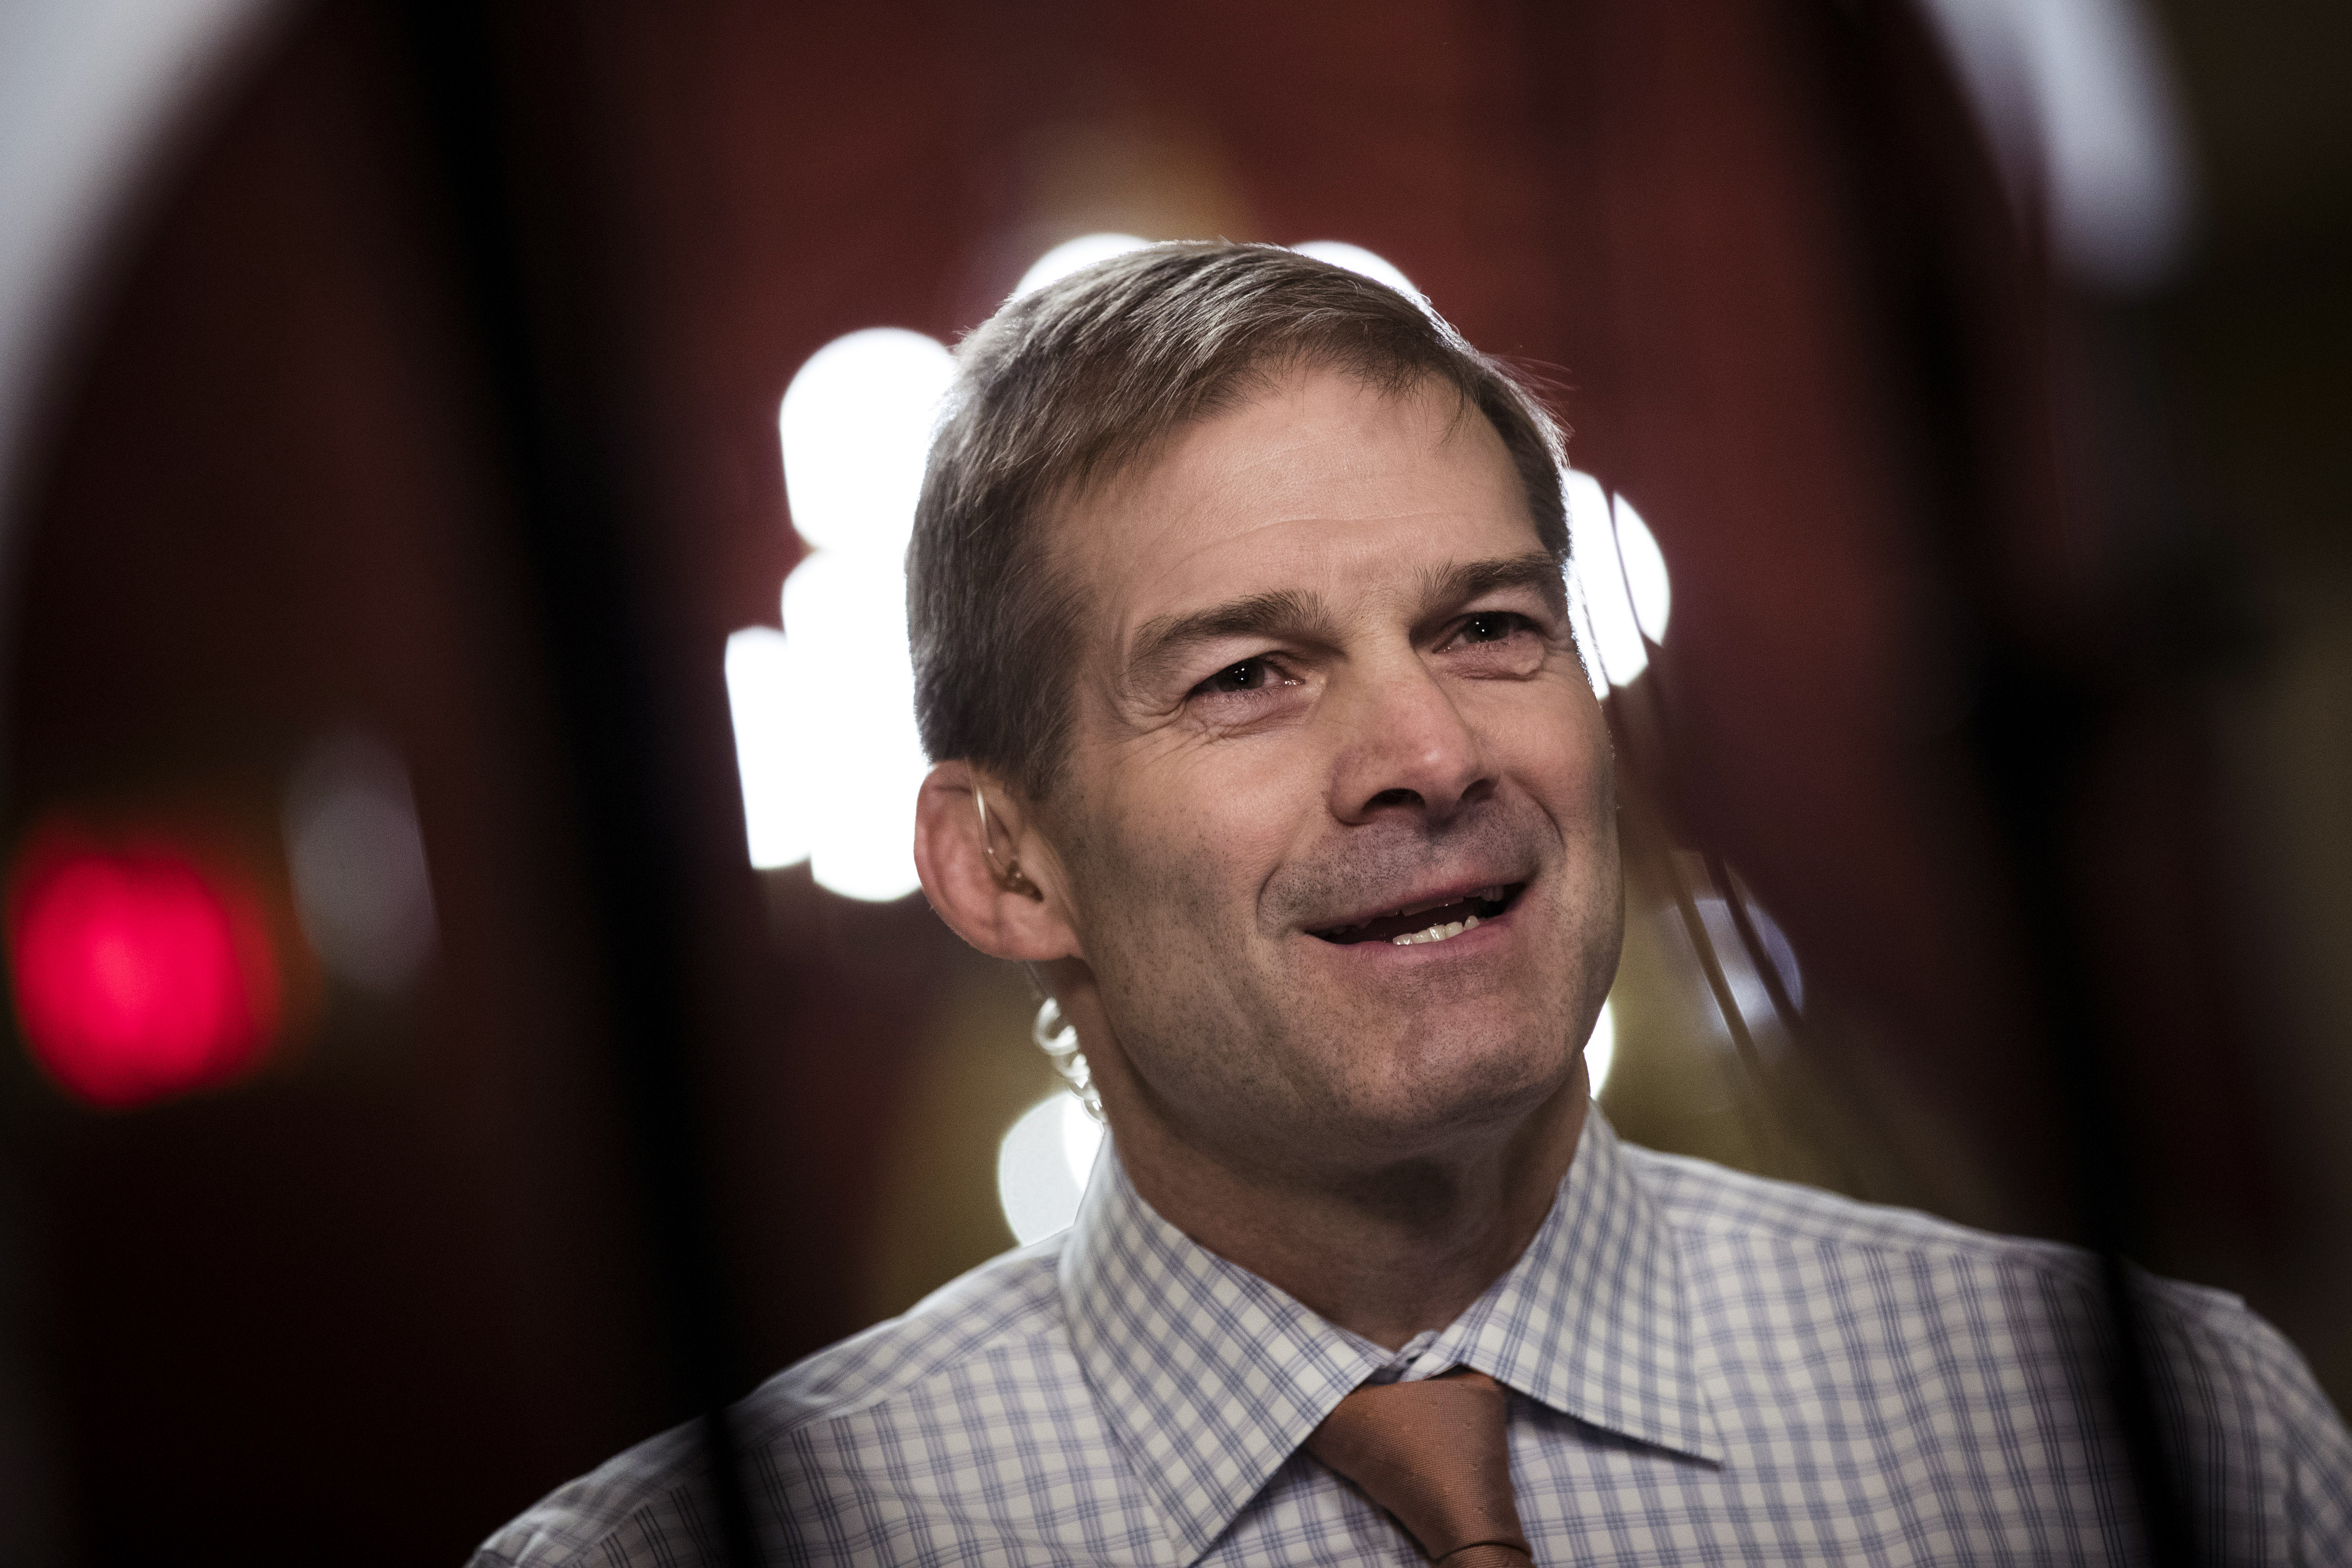 WASHINGTON, DC - DECEMBER 4: House Freedom Caucus member Rep. Jim Jordan (R-OH) speaks during a live television broadcast on Capitol Hill, December 4, 2017 in Washington, DC. The House voted to formally send their tax reform bill to a joint conference committee with the Senate, where they will try to merge the two bills. (Drew Angerer/Getty Images)